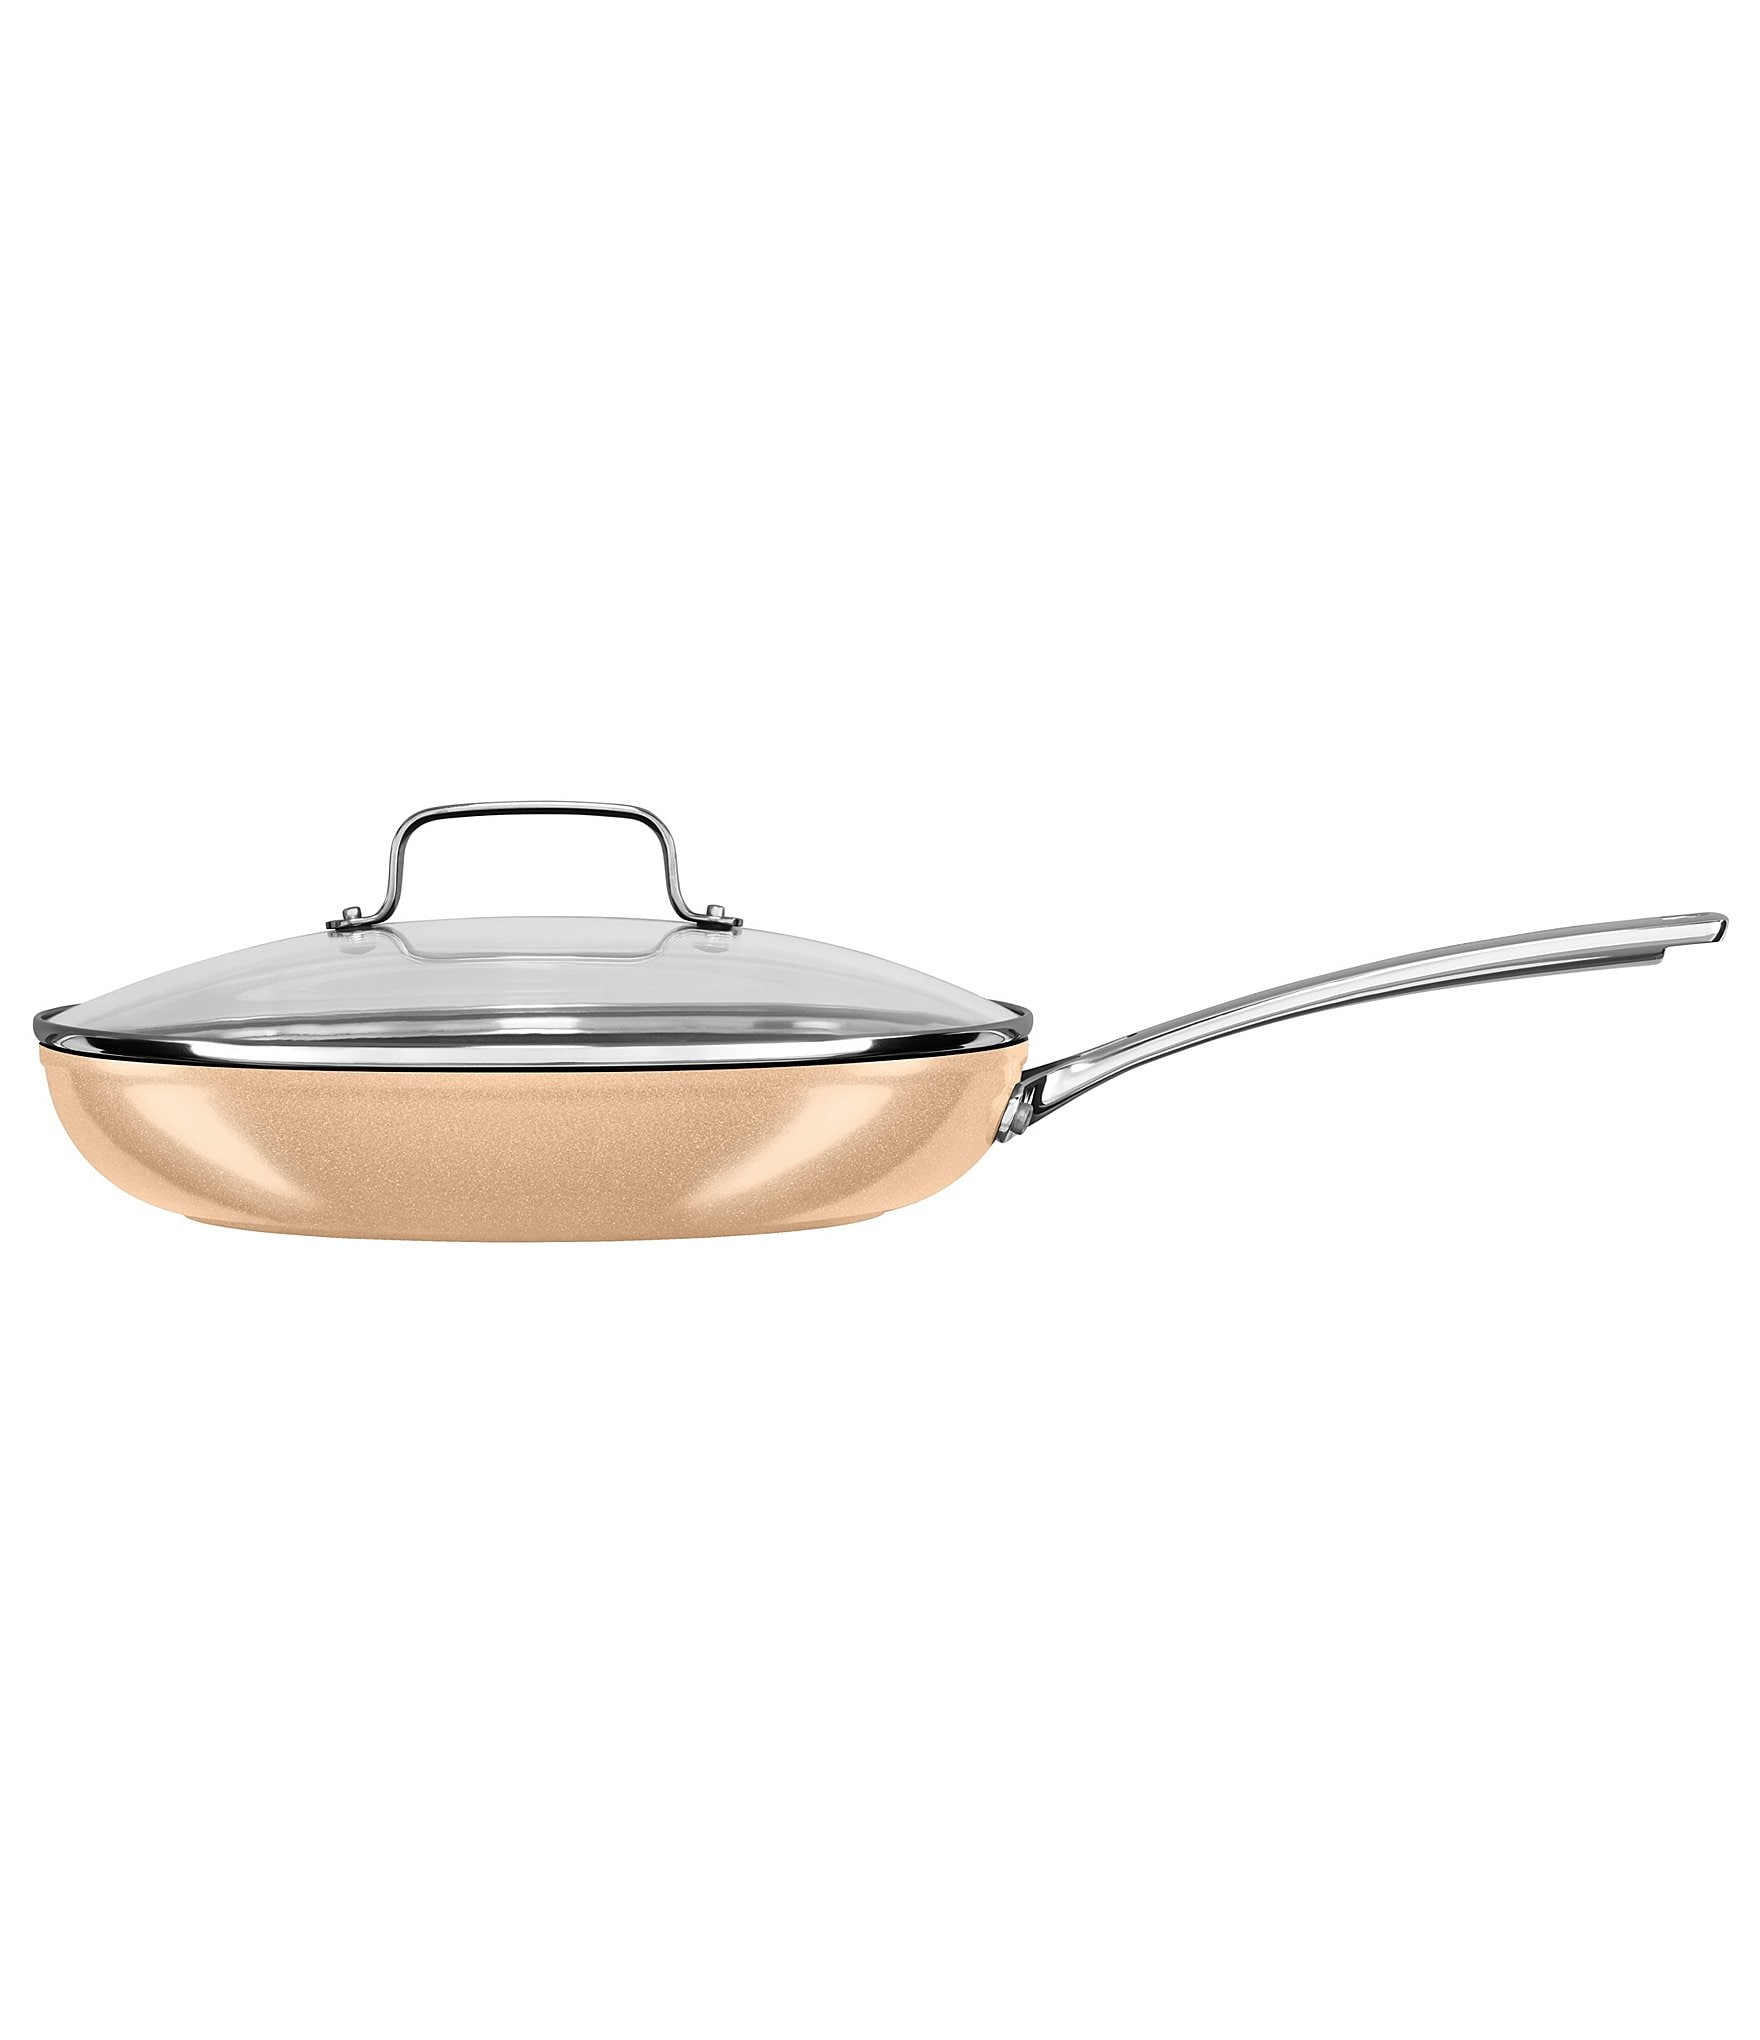 KitchenAid Toffee Delight Hard Anodized Nonstick Skillet